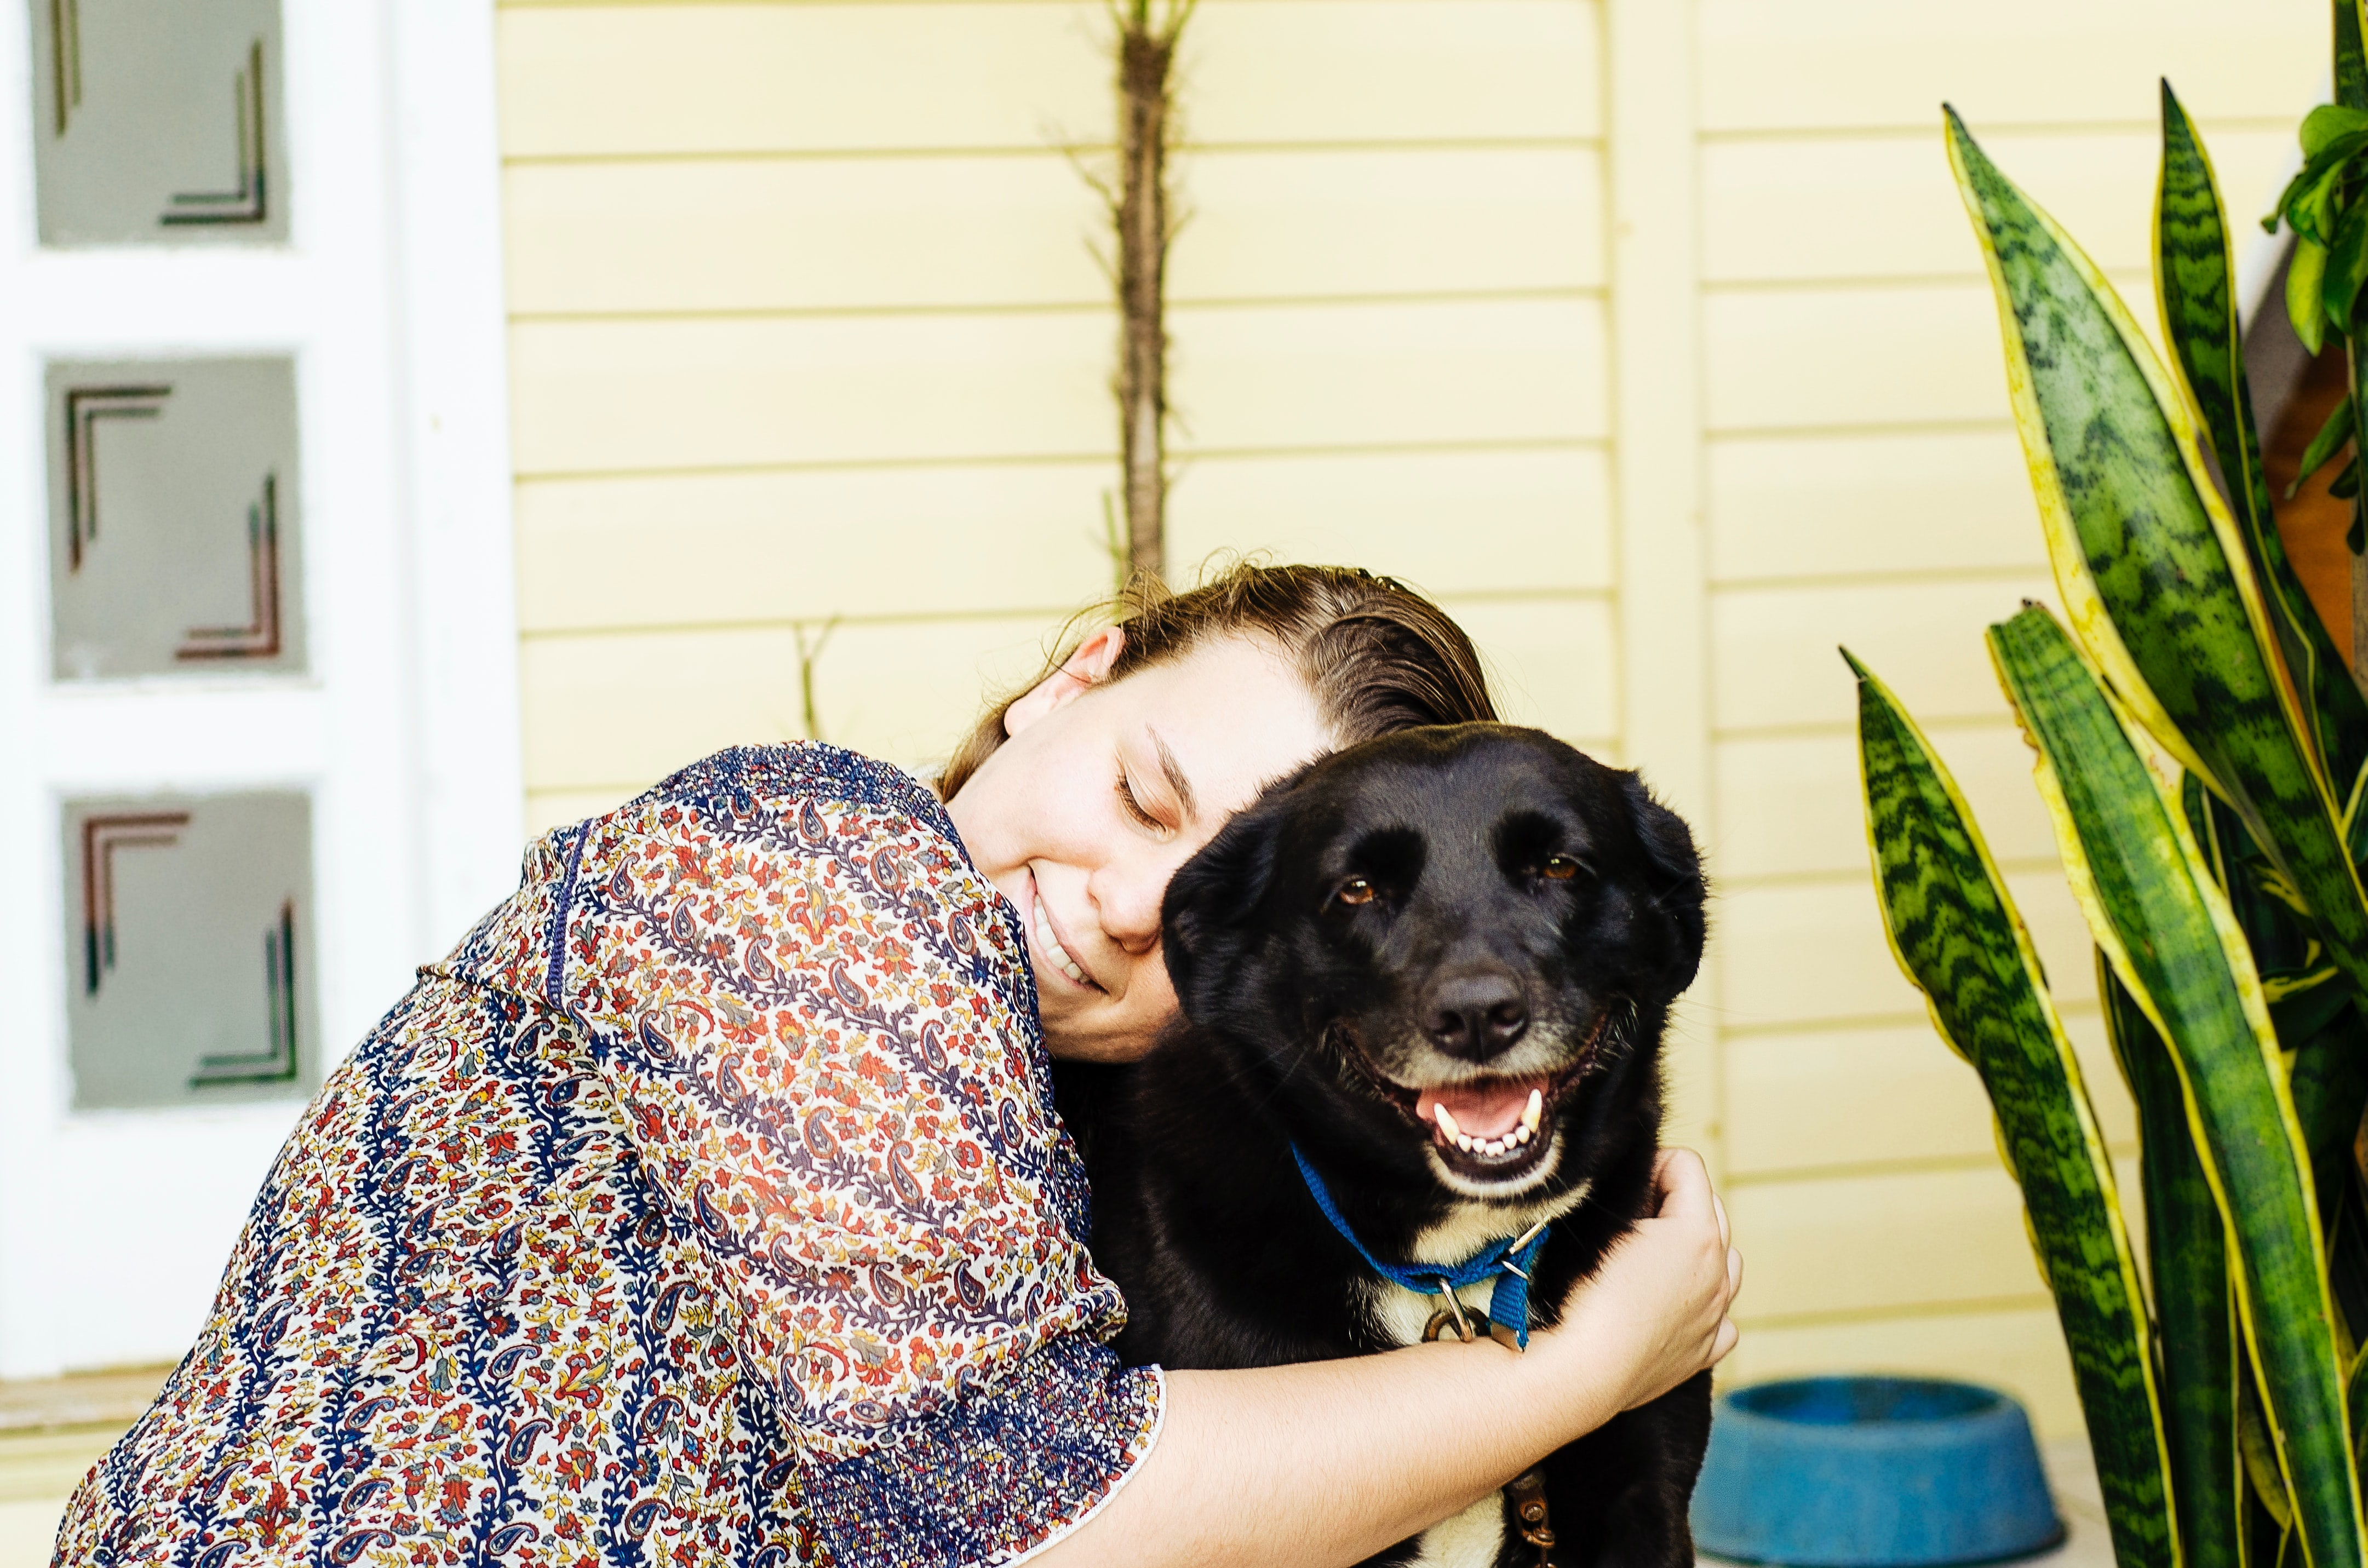 Plan a visit with a dog-less friend or older person who may love a visit from a furry friend!